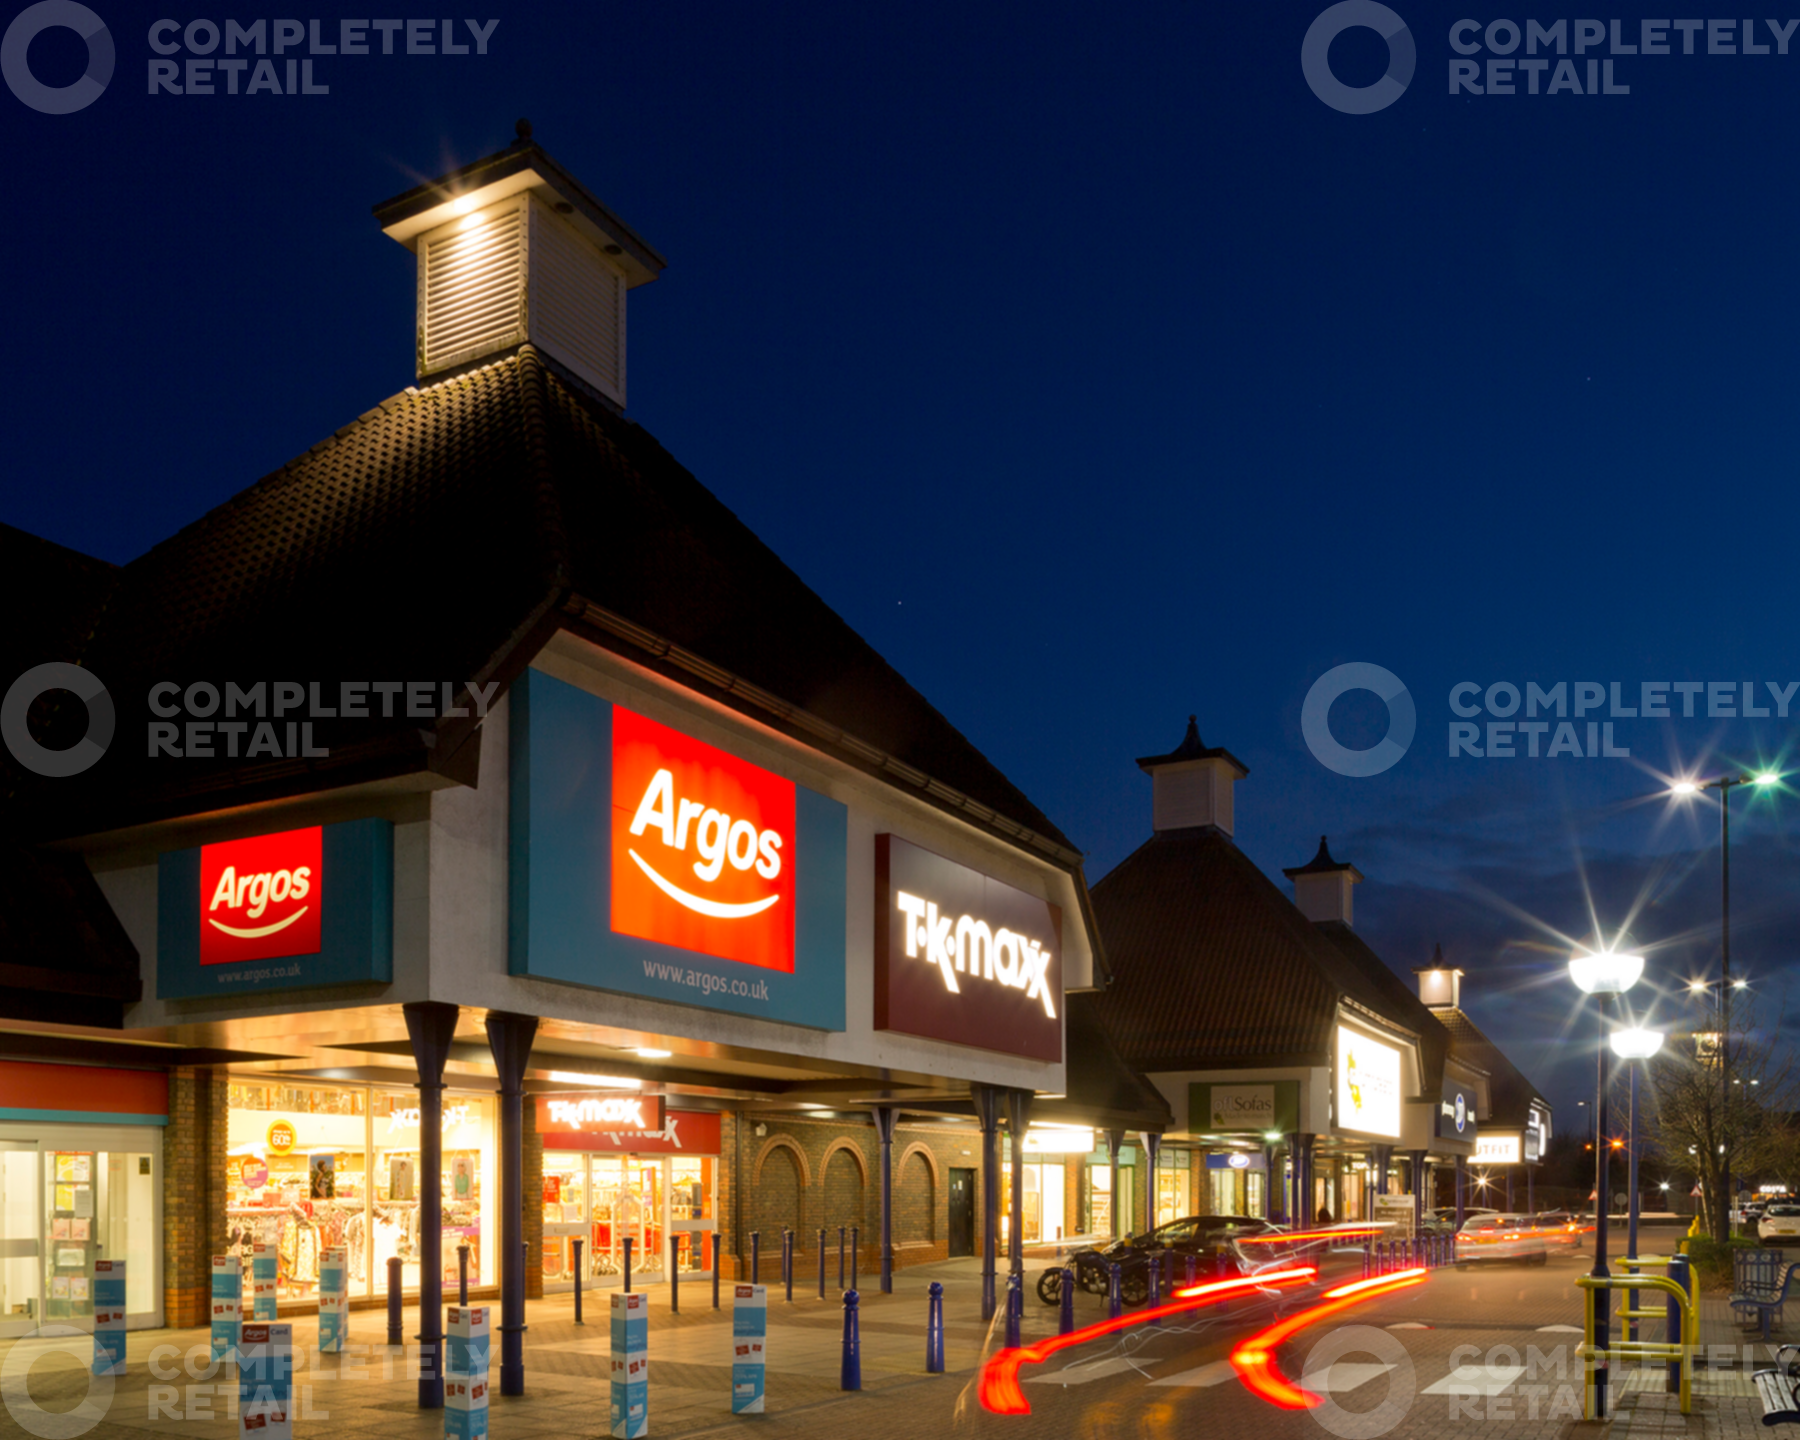 CG_Chelmer_Village_Retail_Park_Chelmsford_picture_2018-10-04-12-16-49_p8_1800x1440.png